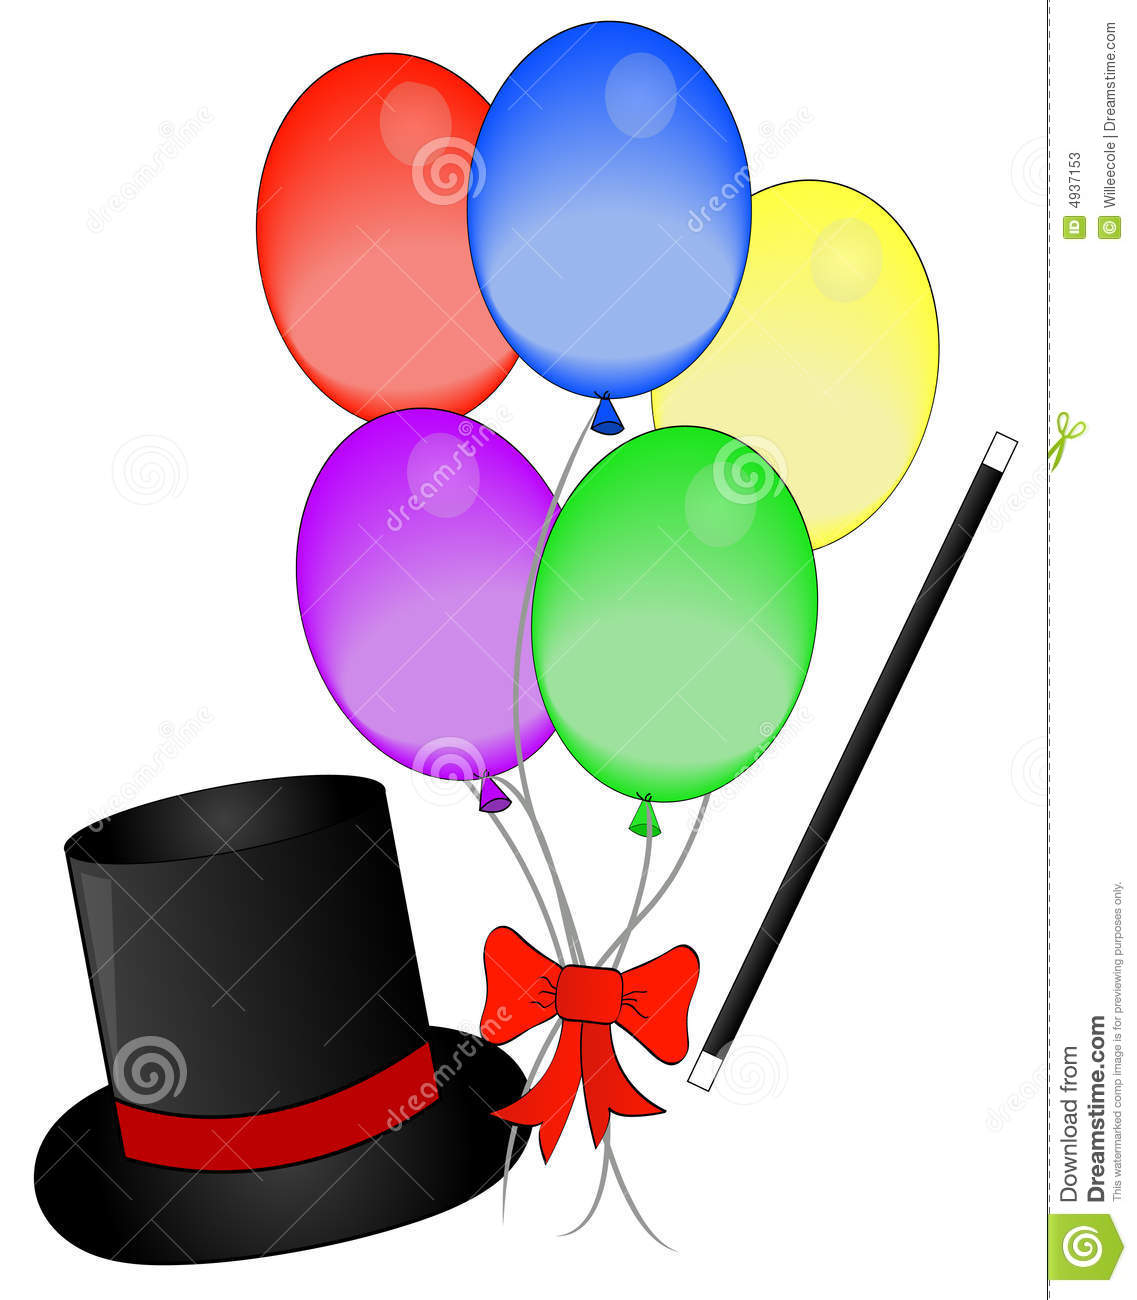 Magic hat wand and balloons stock photos image 4937153